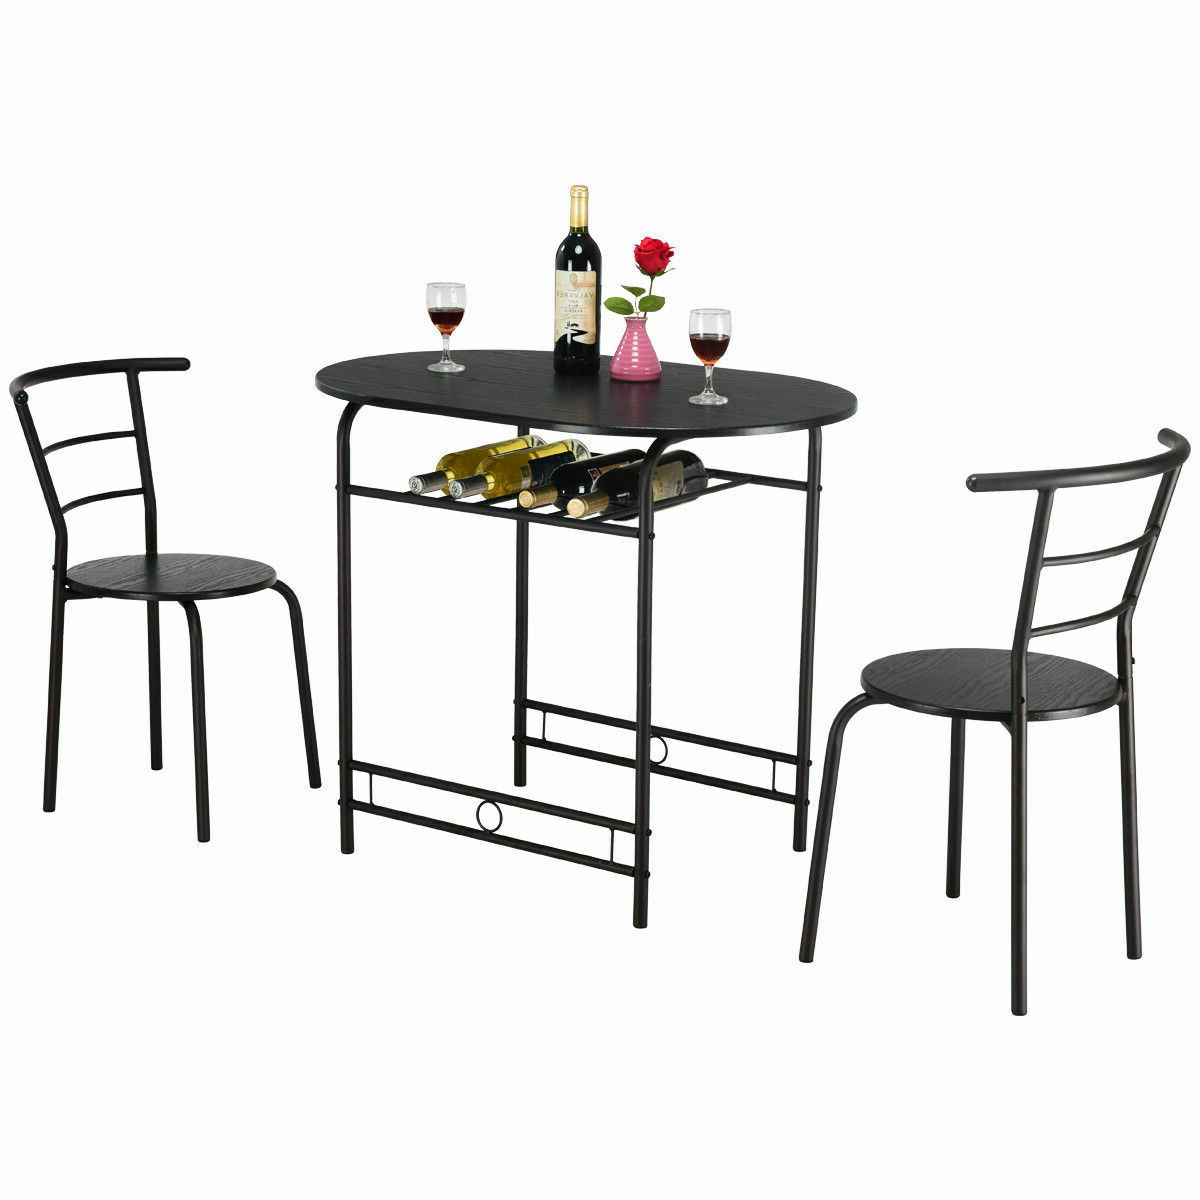 3 Pcs Dining Table Set W/1 Table And 2 Chairs Home With Best And Newest 3 Pieces Dining Tables And Chair Set (View 17 of 30)